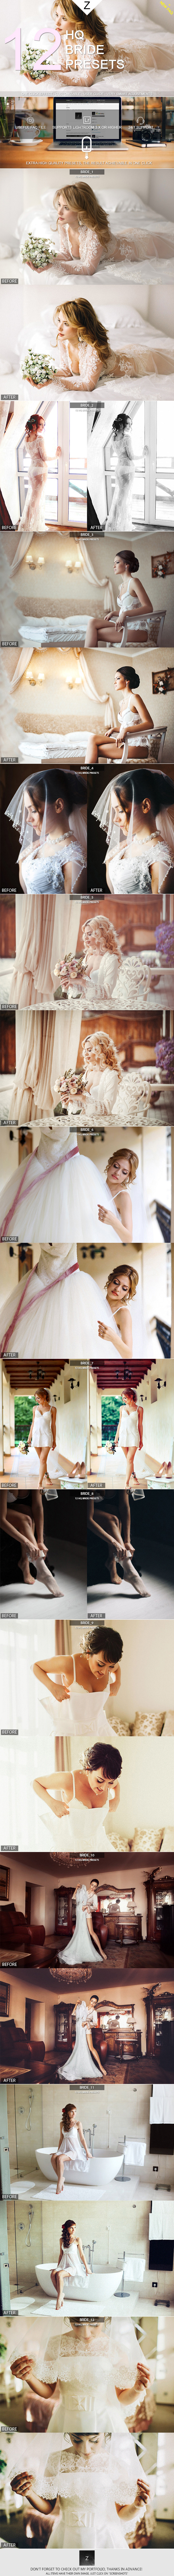 GraphicRiver 12 HQ Bride Presets 10621421